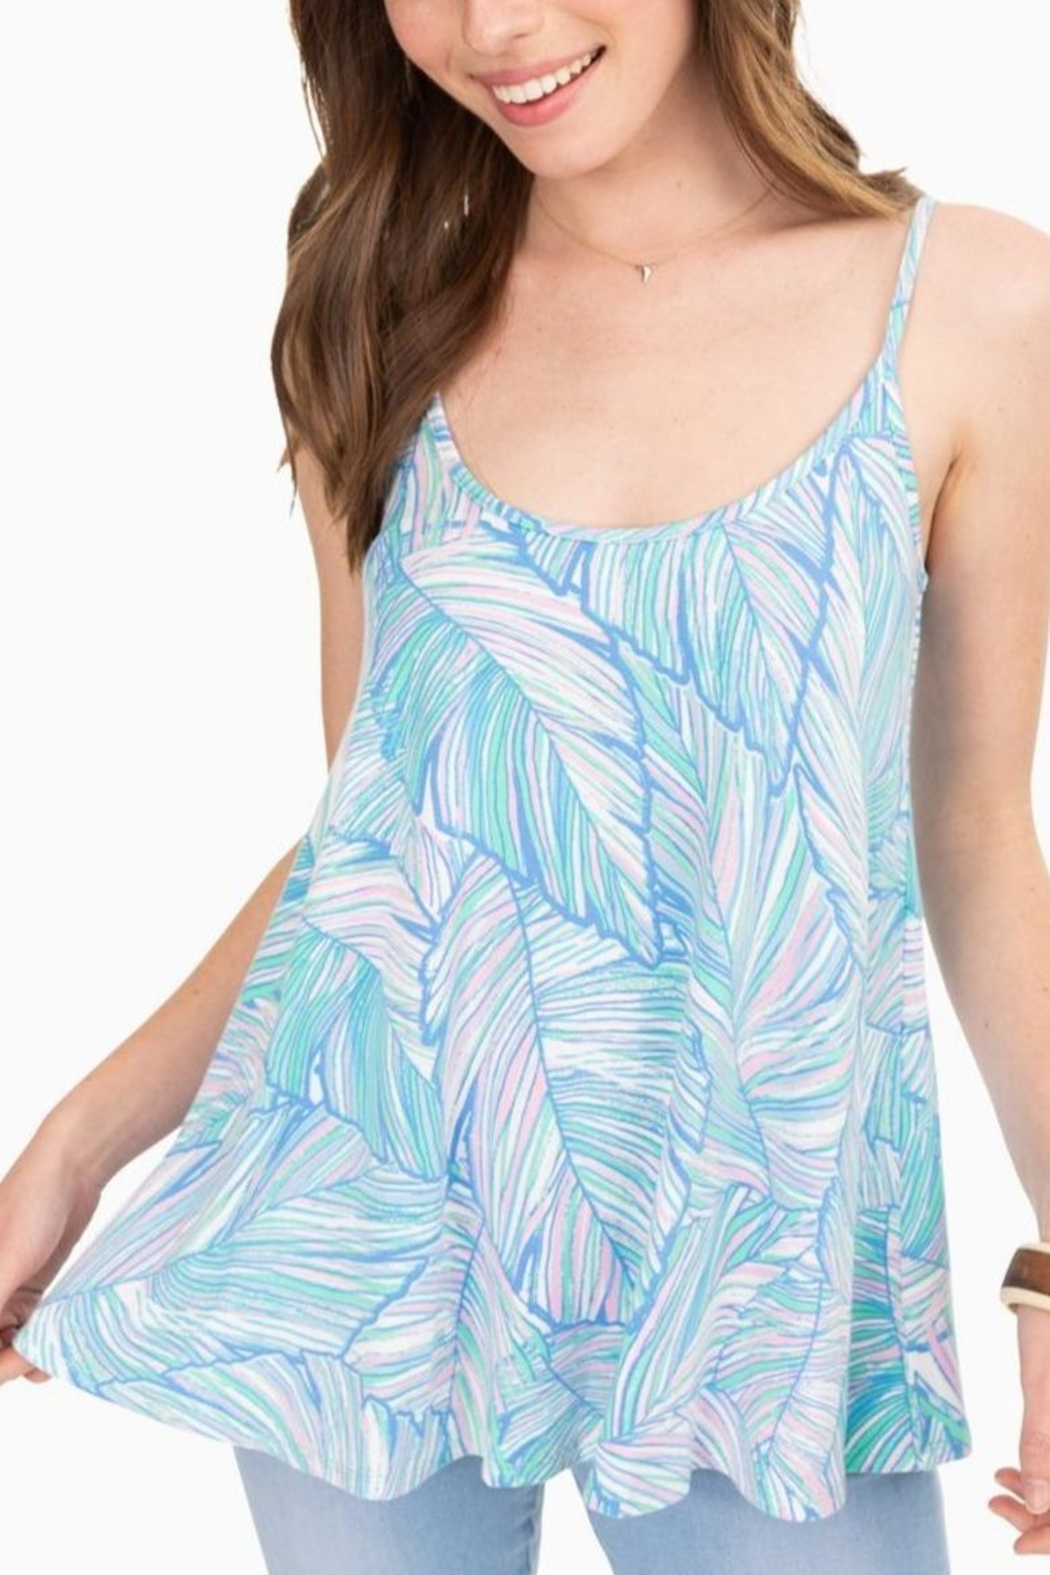 Southern Tide Jorie Palm-Print Tank - Front Full Image